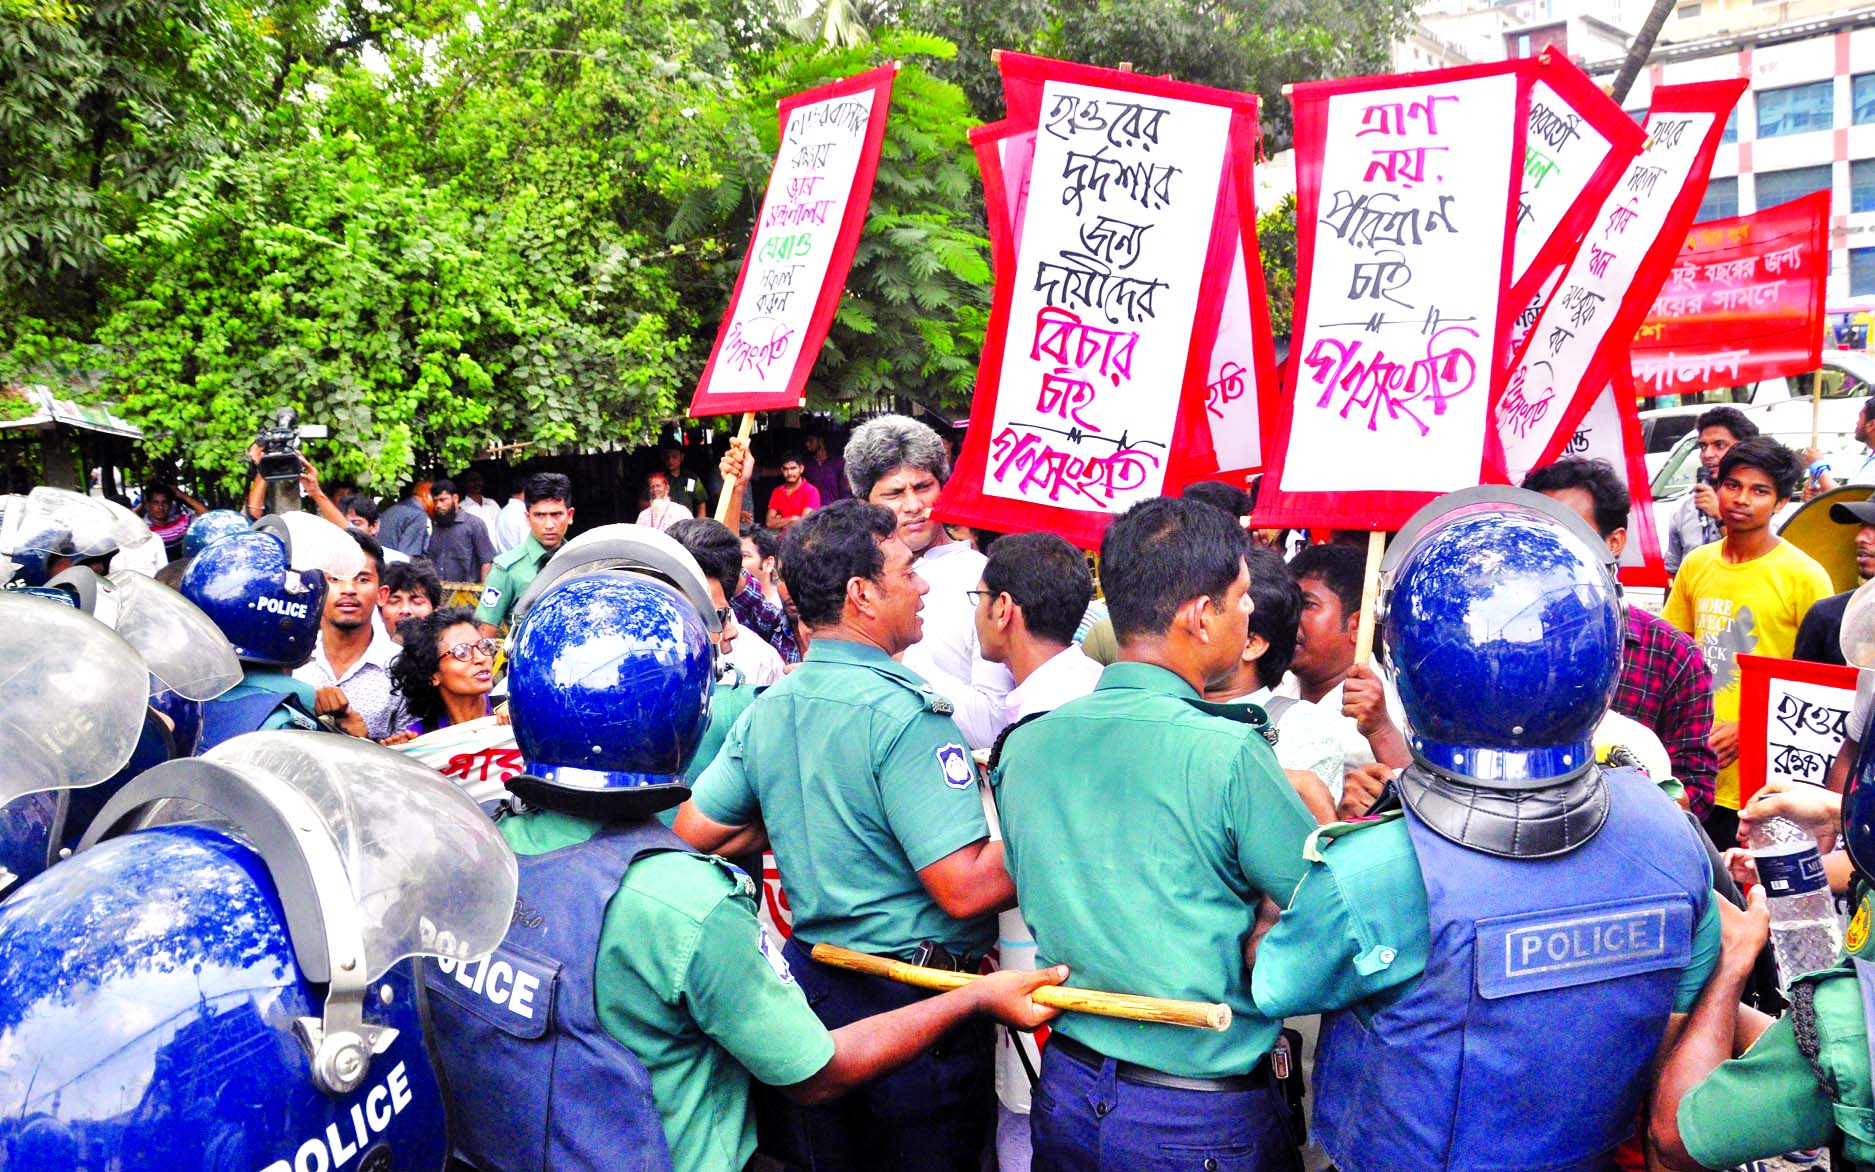 Police barred the leaders and activists of Gono Songhati Andolon near the Jatiya Press Club on Thursday while they were marching towards the Land Ministry demanding leasing out of water bodies for two years.